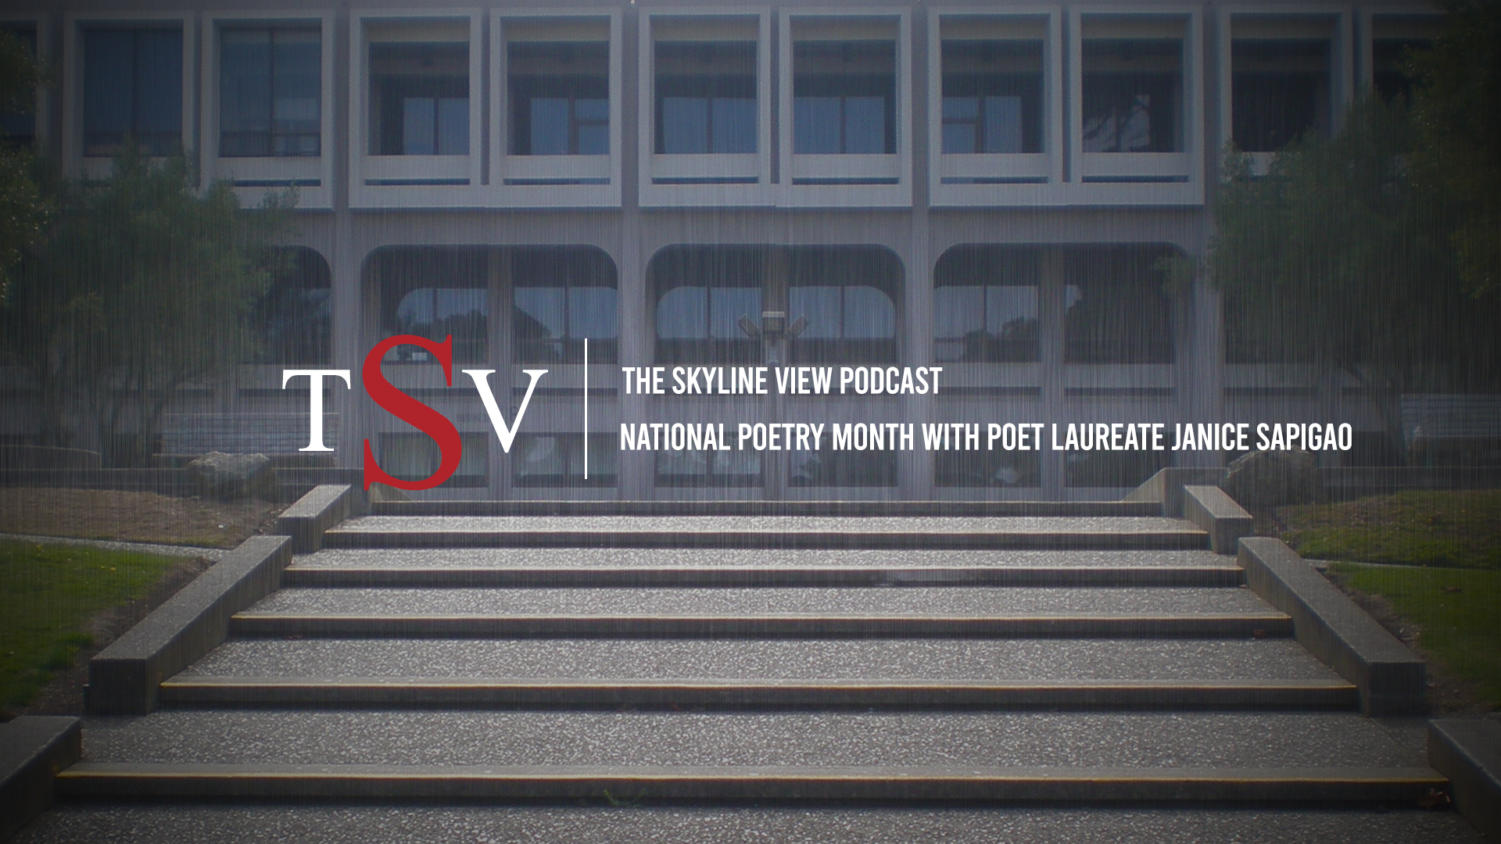 The Skyline View Podcast: National Poetry Month with poet laureate Janice Sapigao